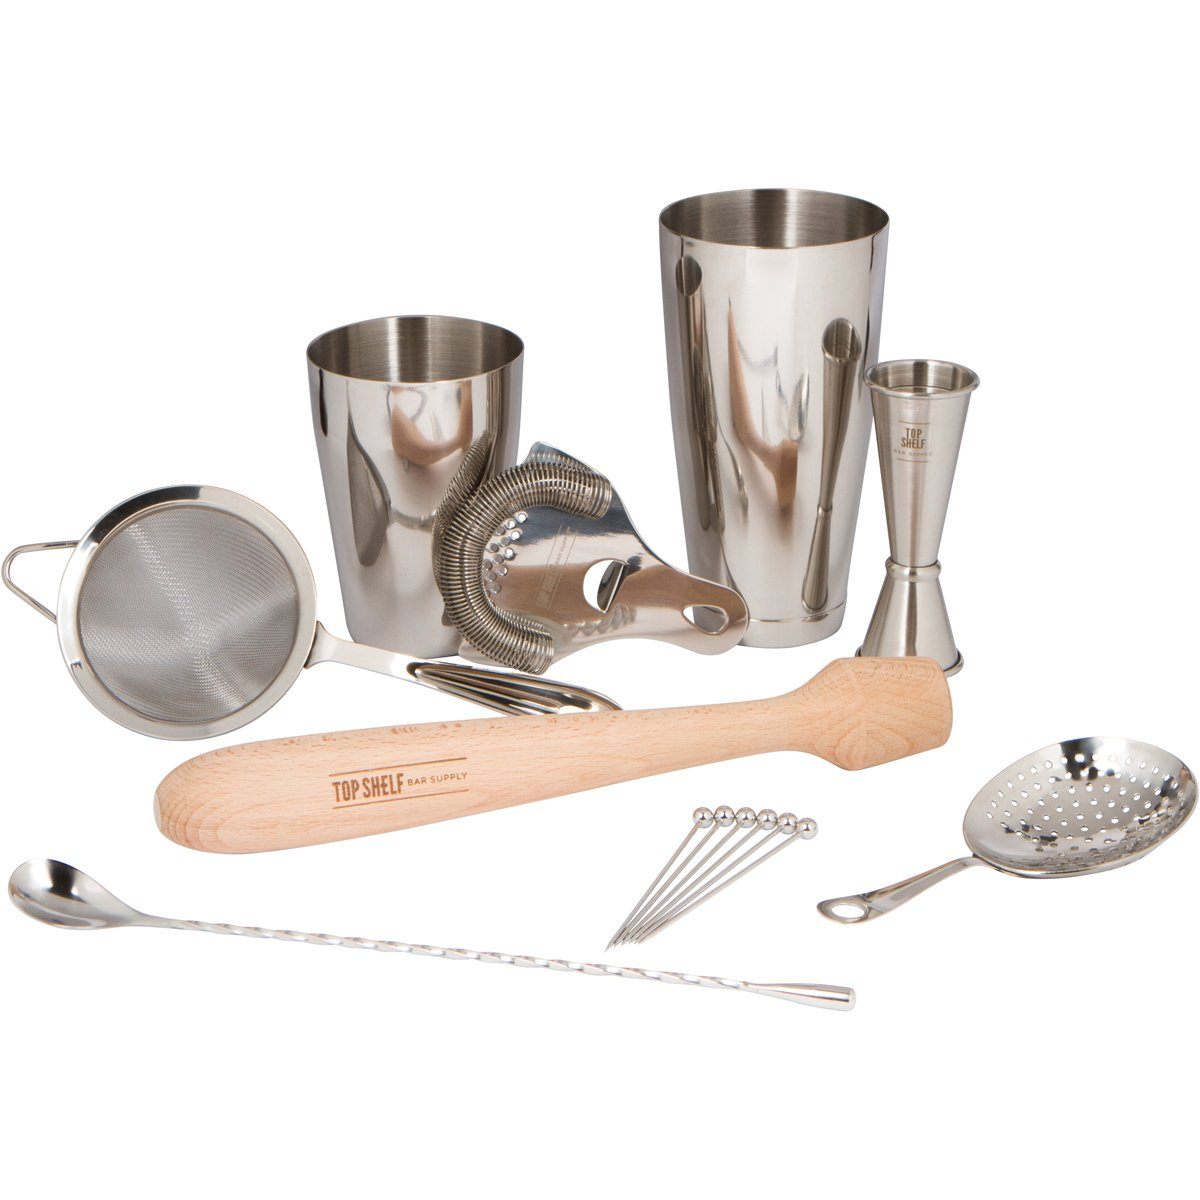 Premium Bar Set for Professional Bartenders: 14 Piece Bartending Set for World-Class Bars. Tools Included: Boston Shaker, all three Cocktail Strainers, Jigger, Muddler, Spoon & 6 Cocktail Picks